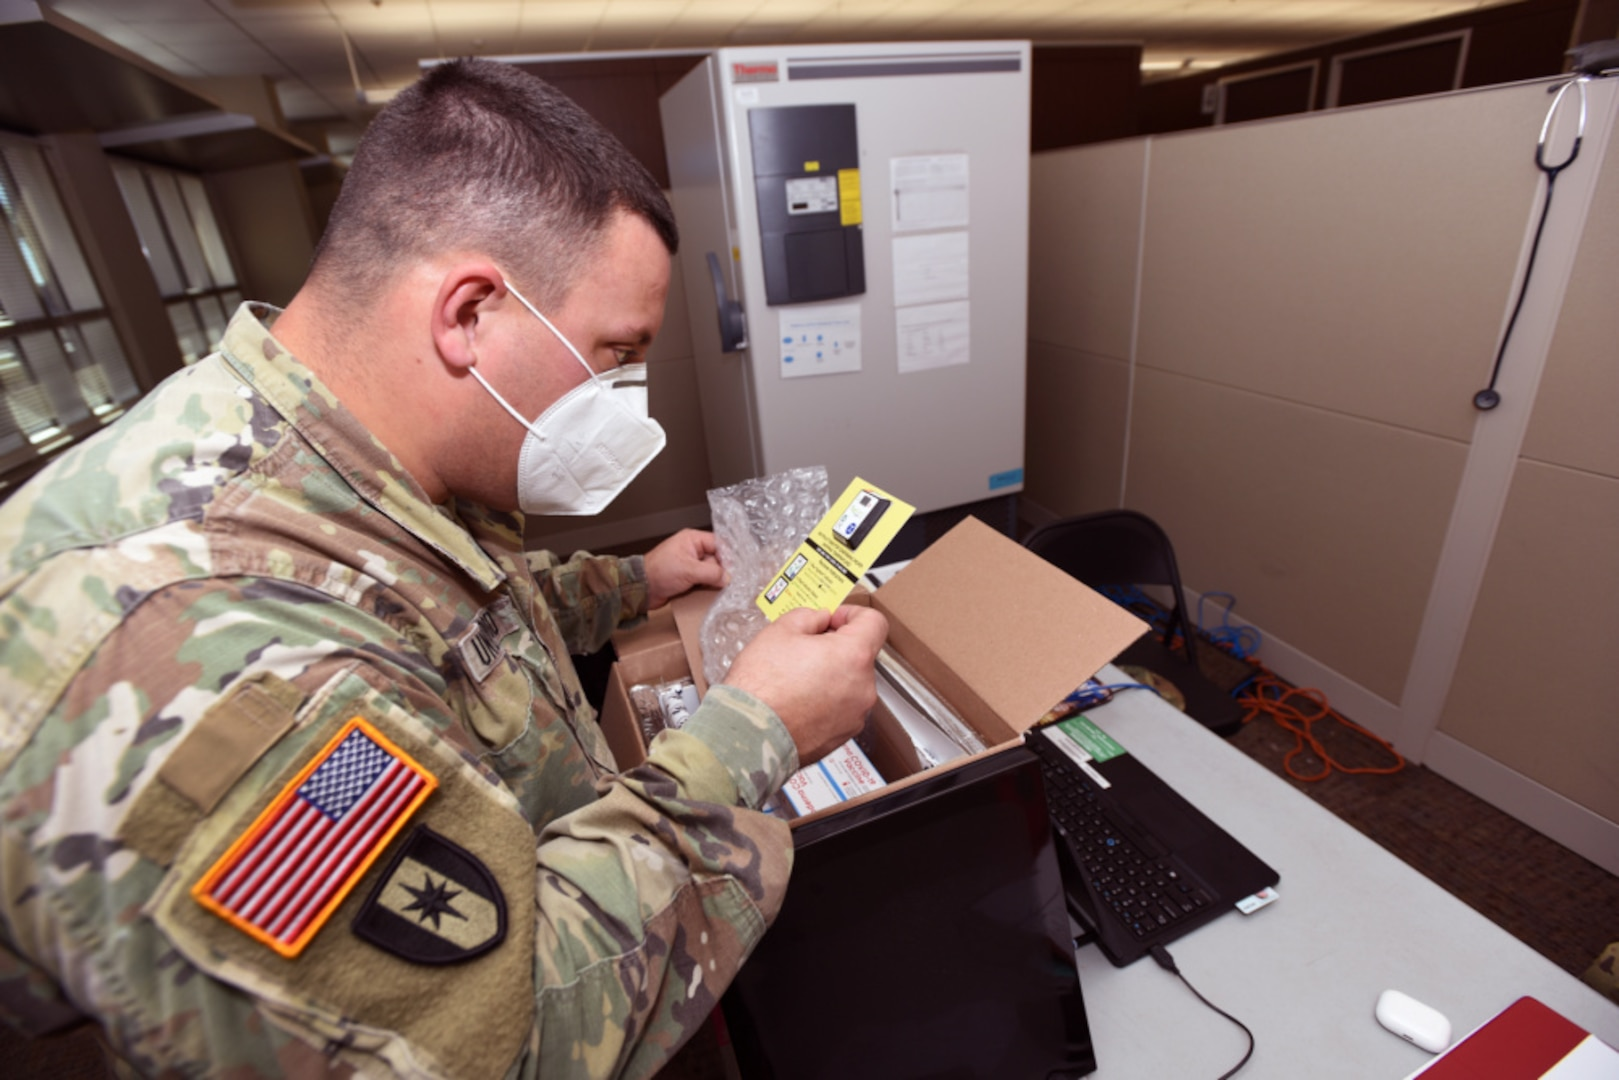 A man in operational camo pattern uniform and protective mask  unpackages a yellow card from a box.